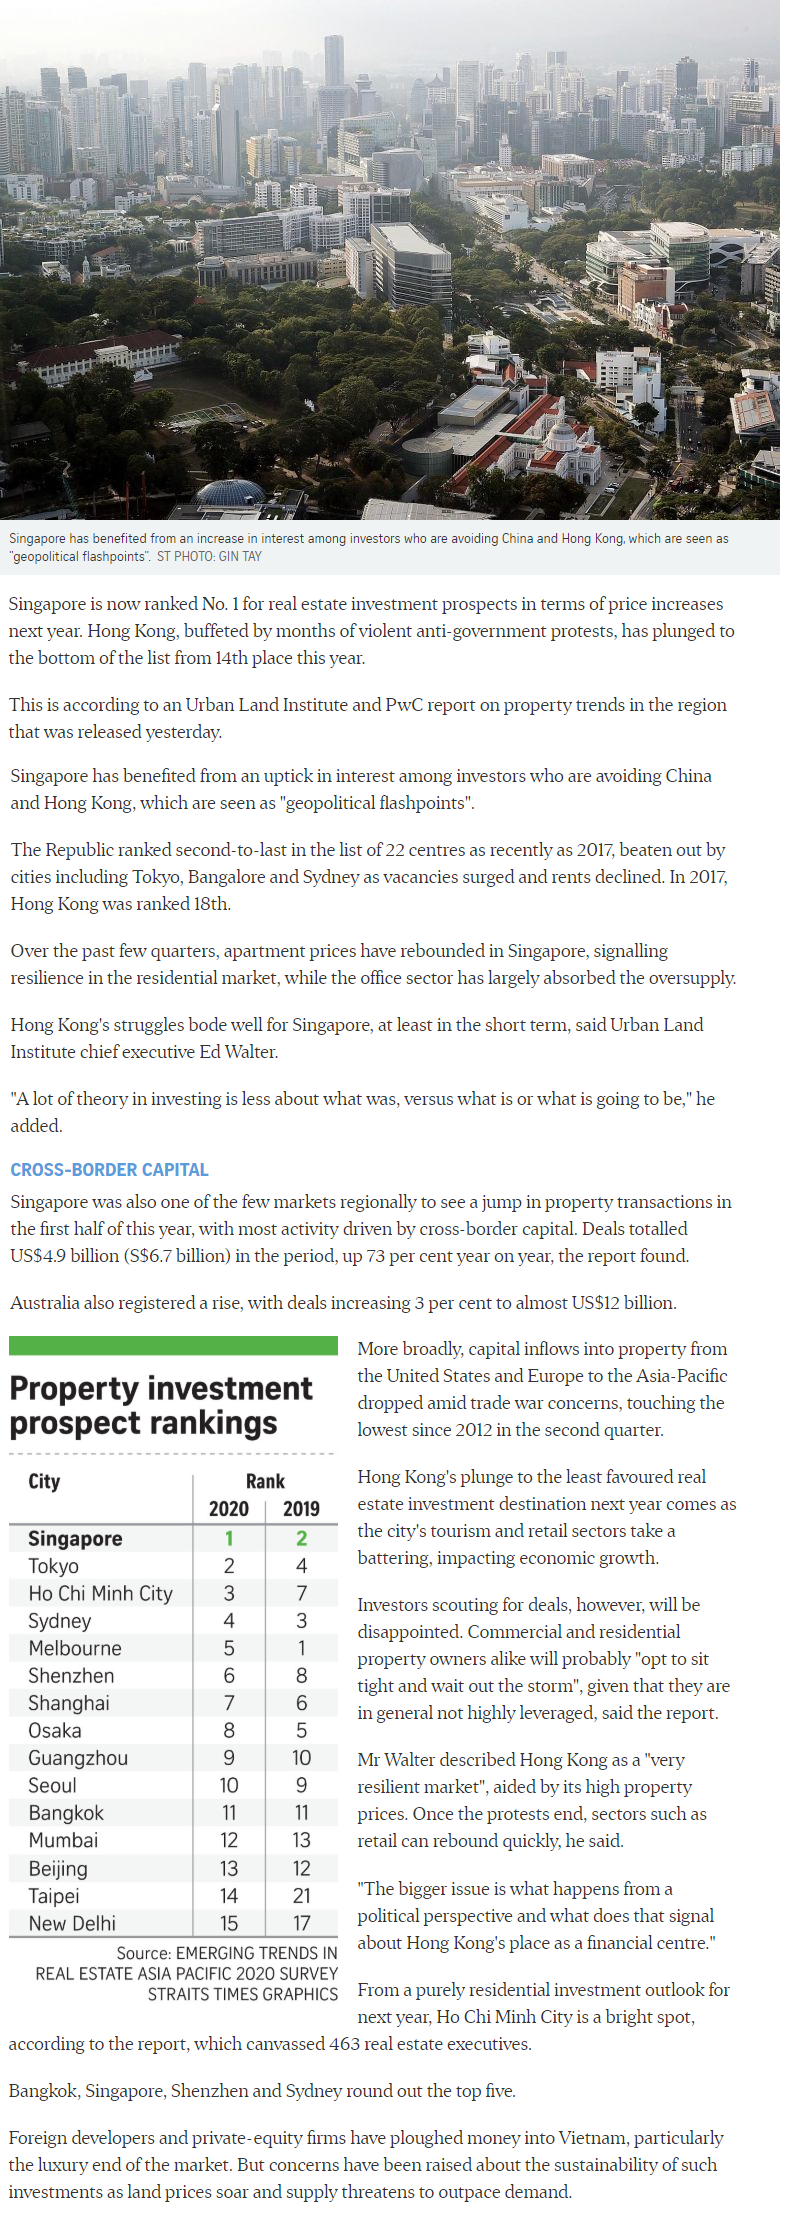 The Watergardens - Singapore Tops Region For Property Investment Prospects